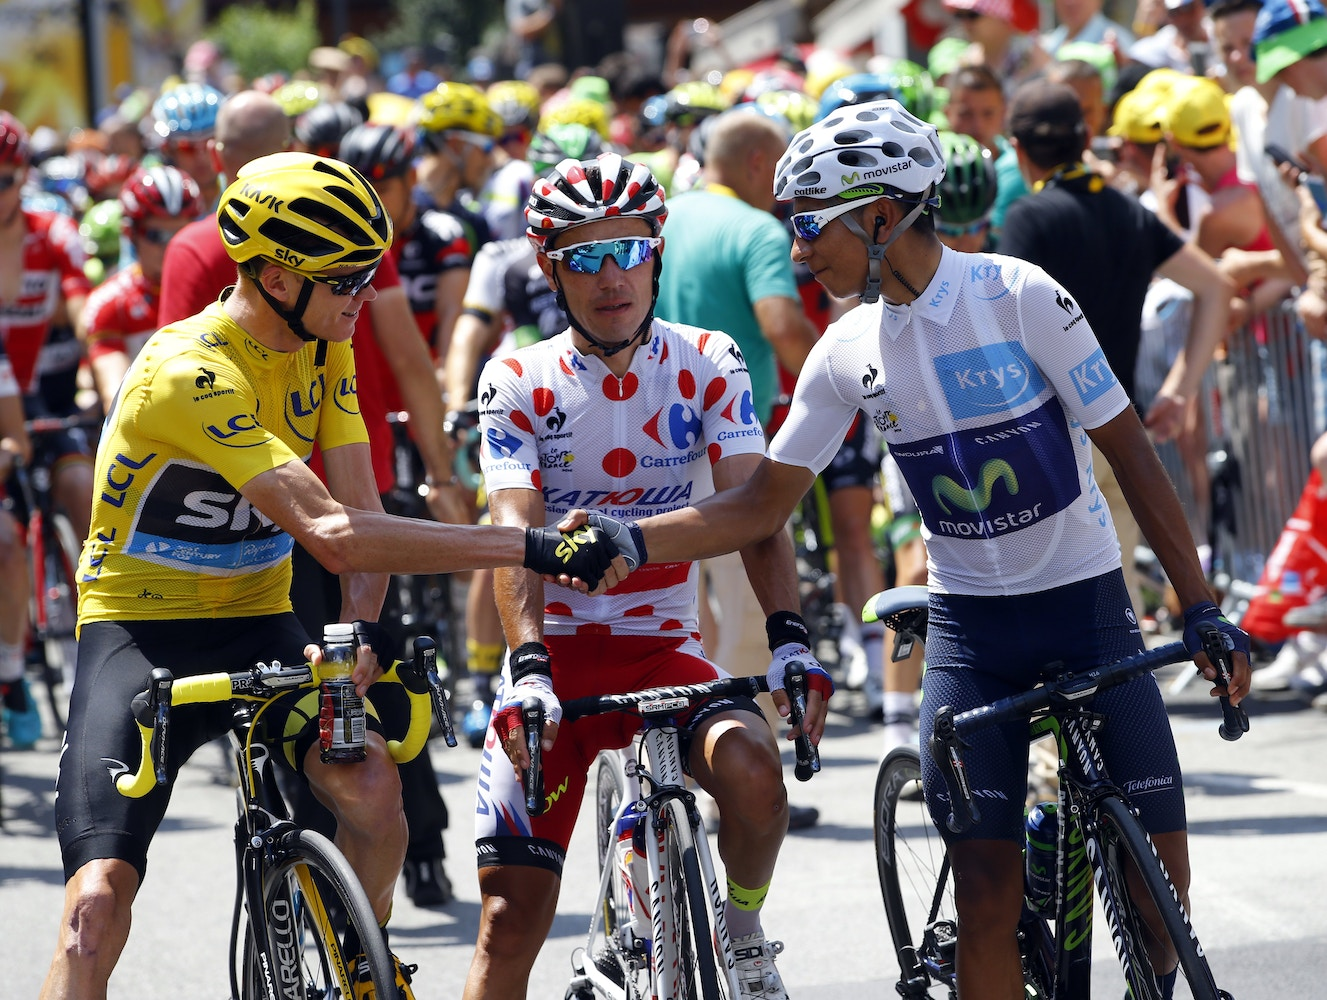 Tour de France 2015 - it's a Wrap